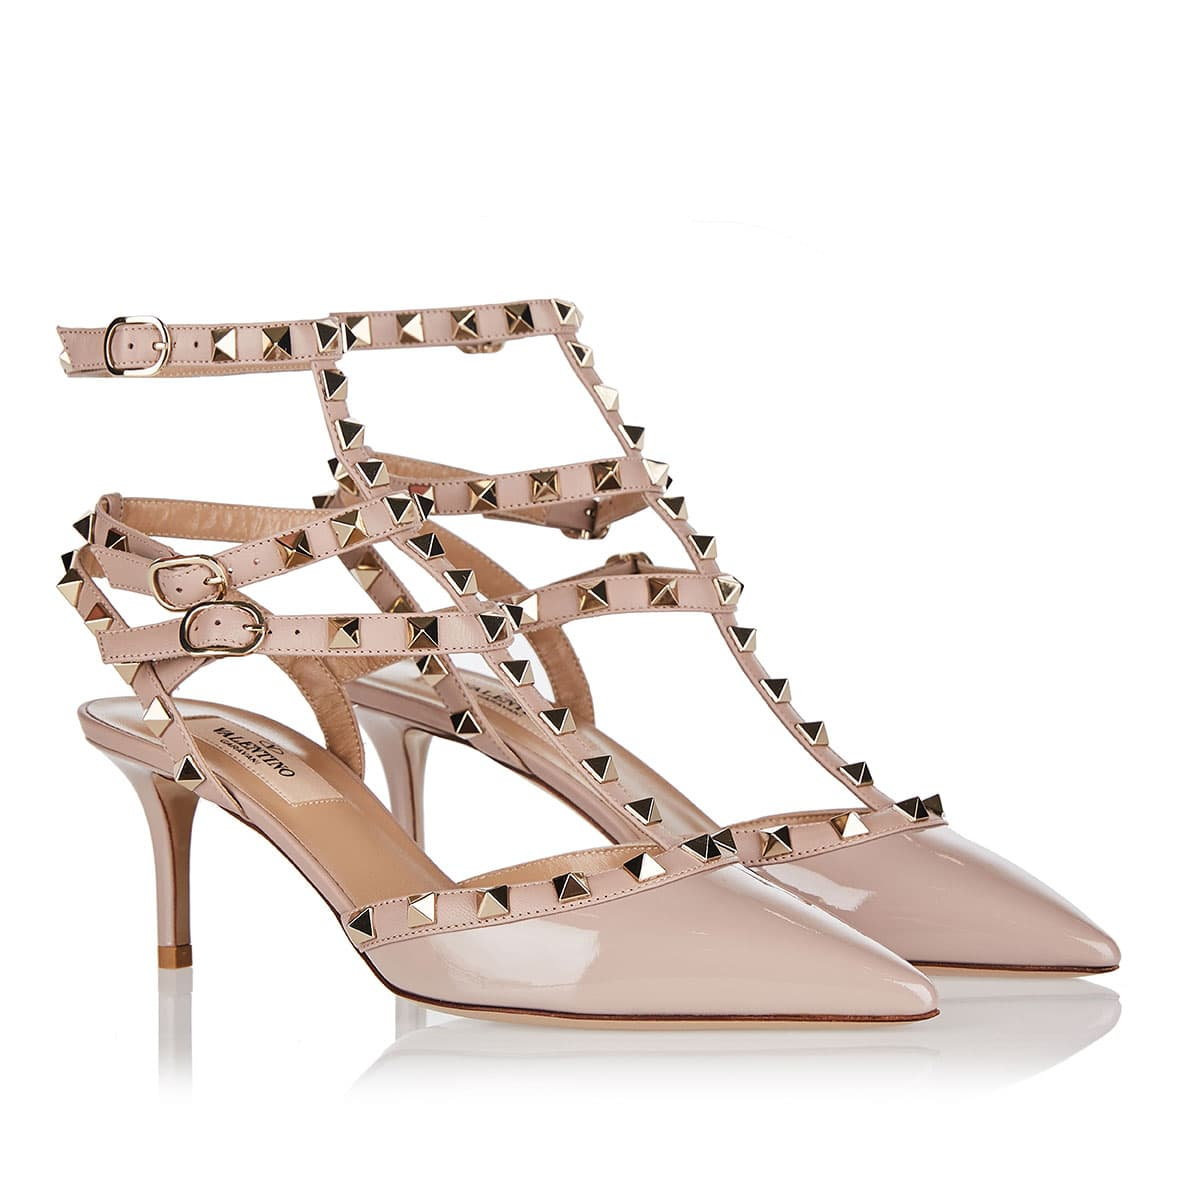 Rockstud patent and leather pumps